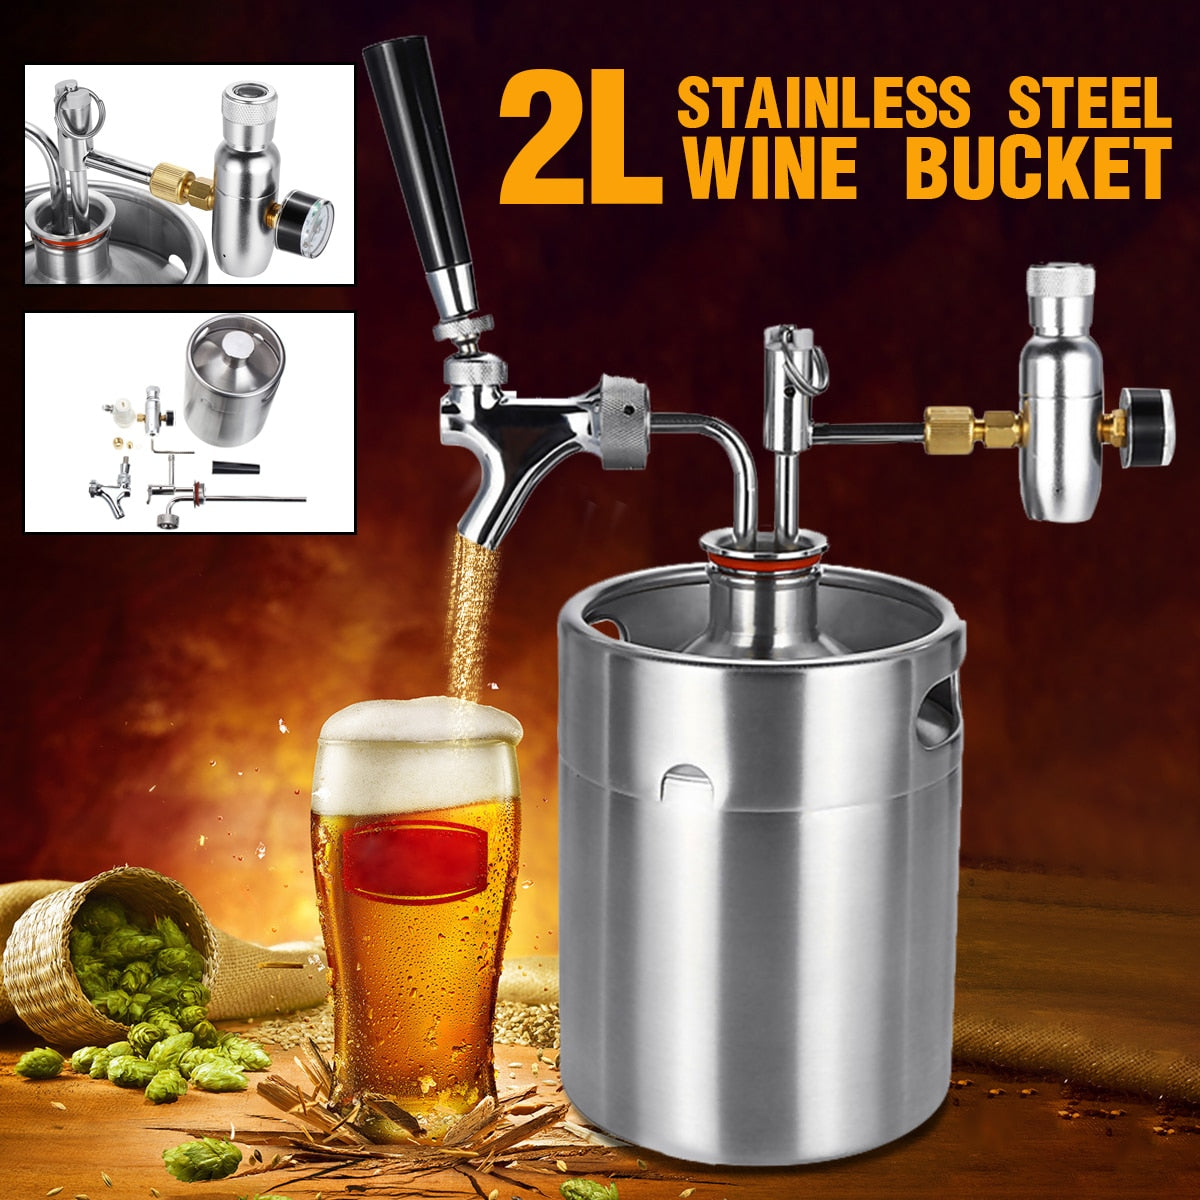 2L Stainless Steel Wine/Beer Home Keg